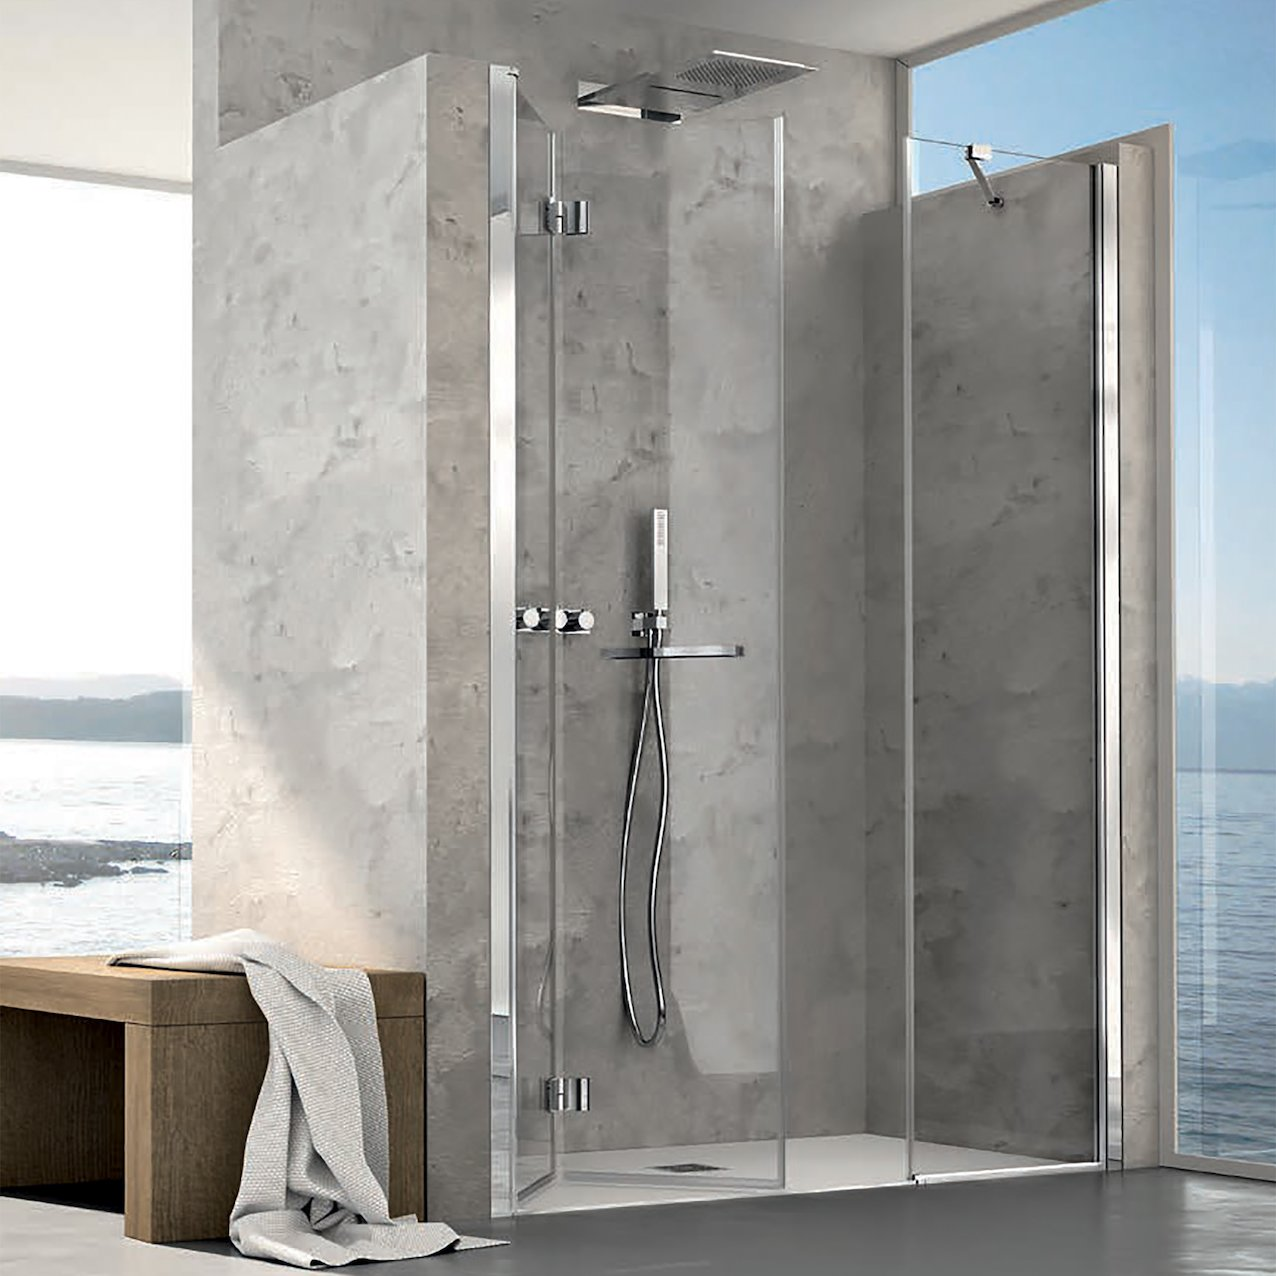 Folding Shower Enclosure Detian